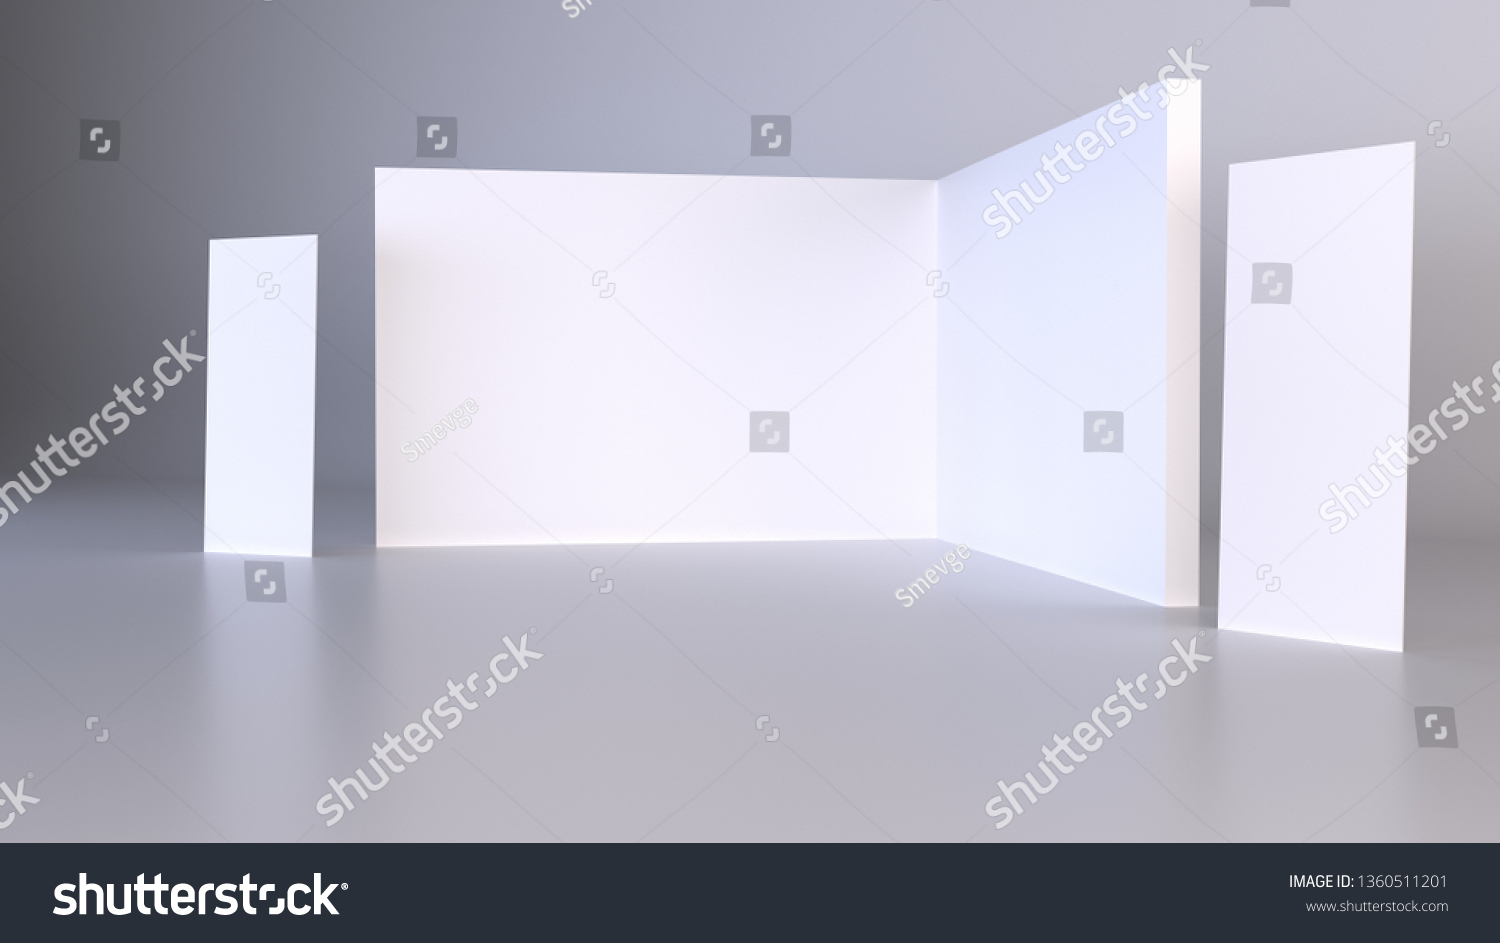 Exhibition Stand Roll Up : Royalty free stock illustration of blank trade show booth roll